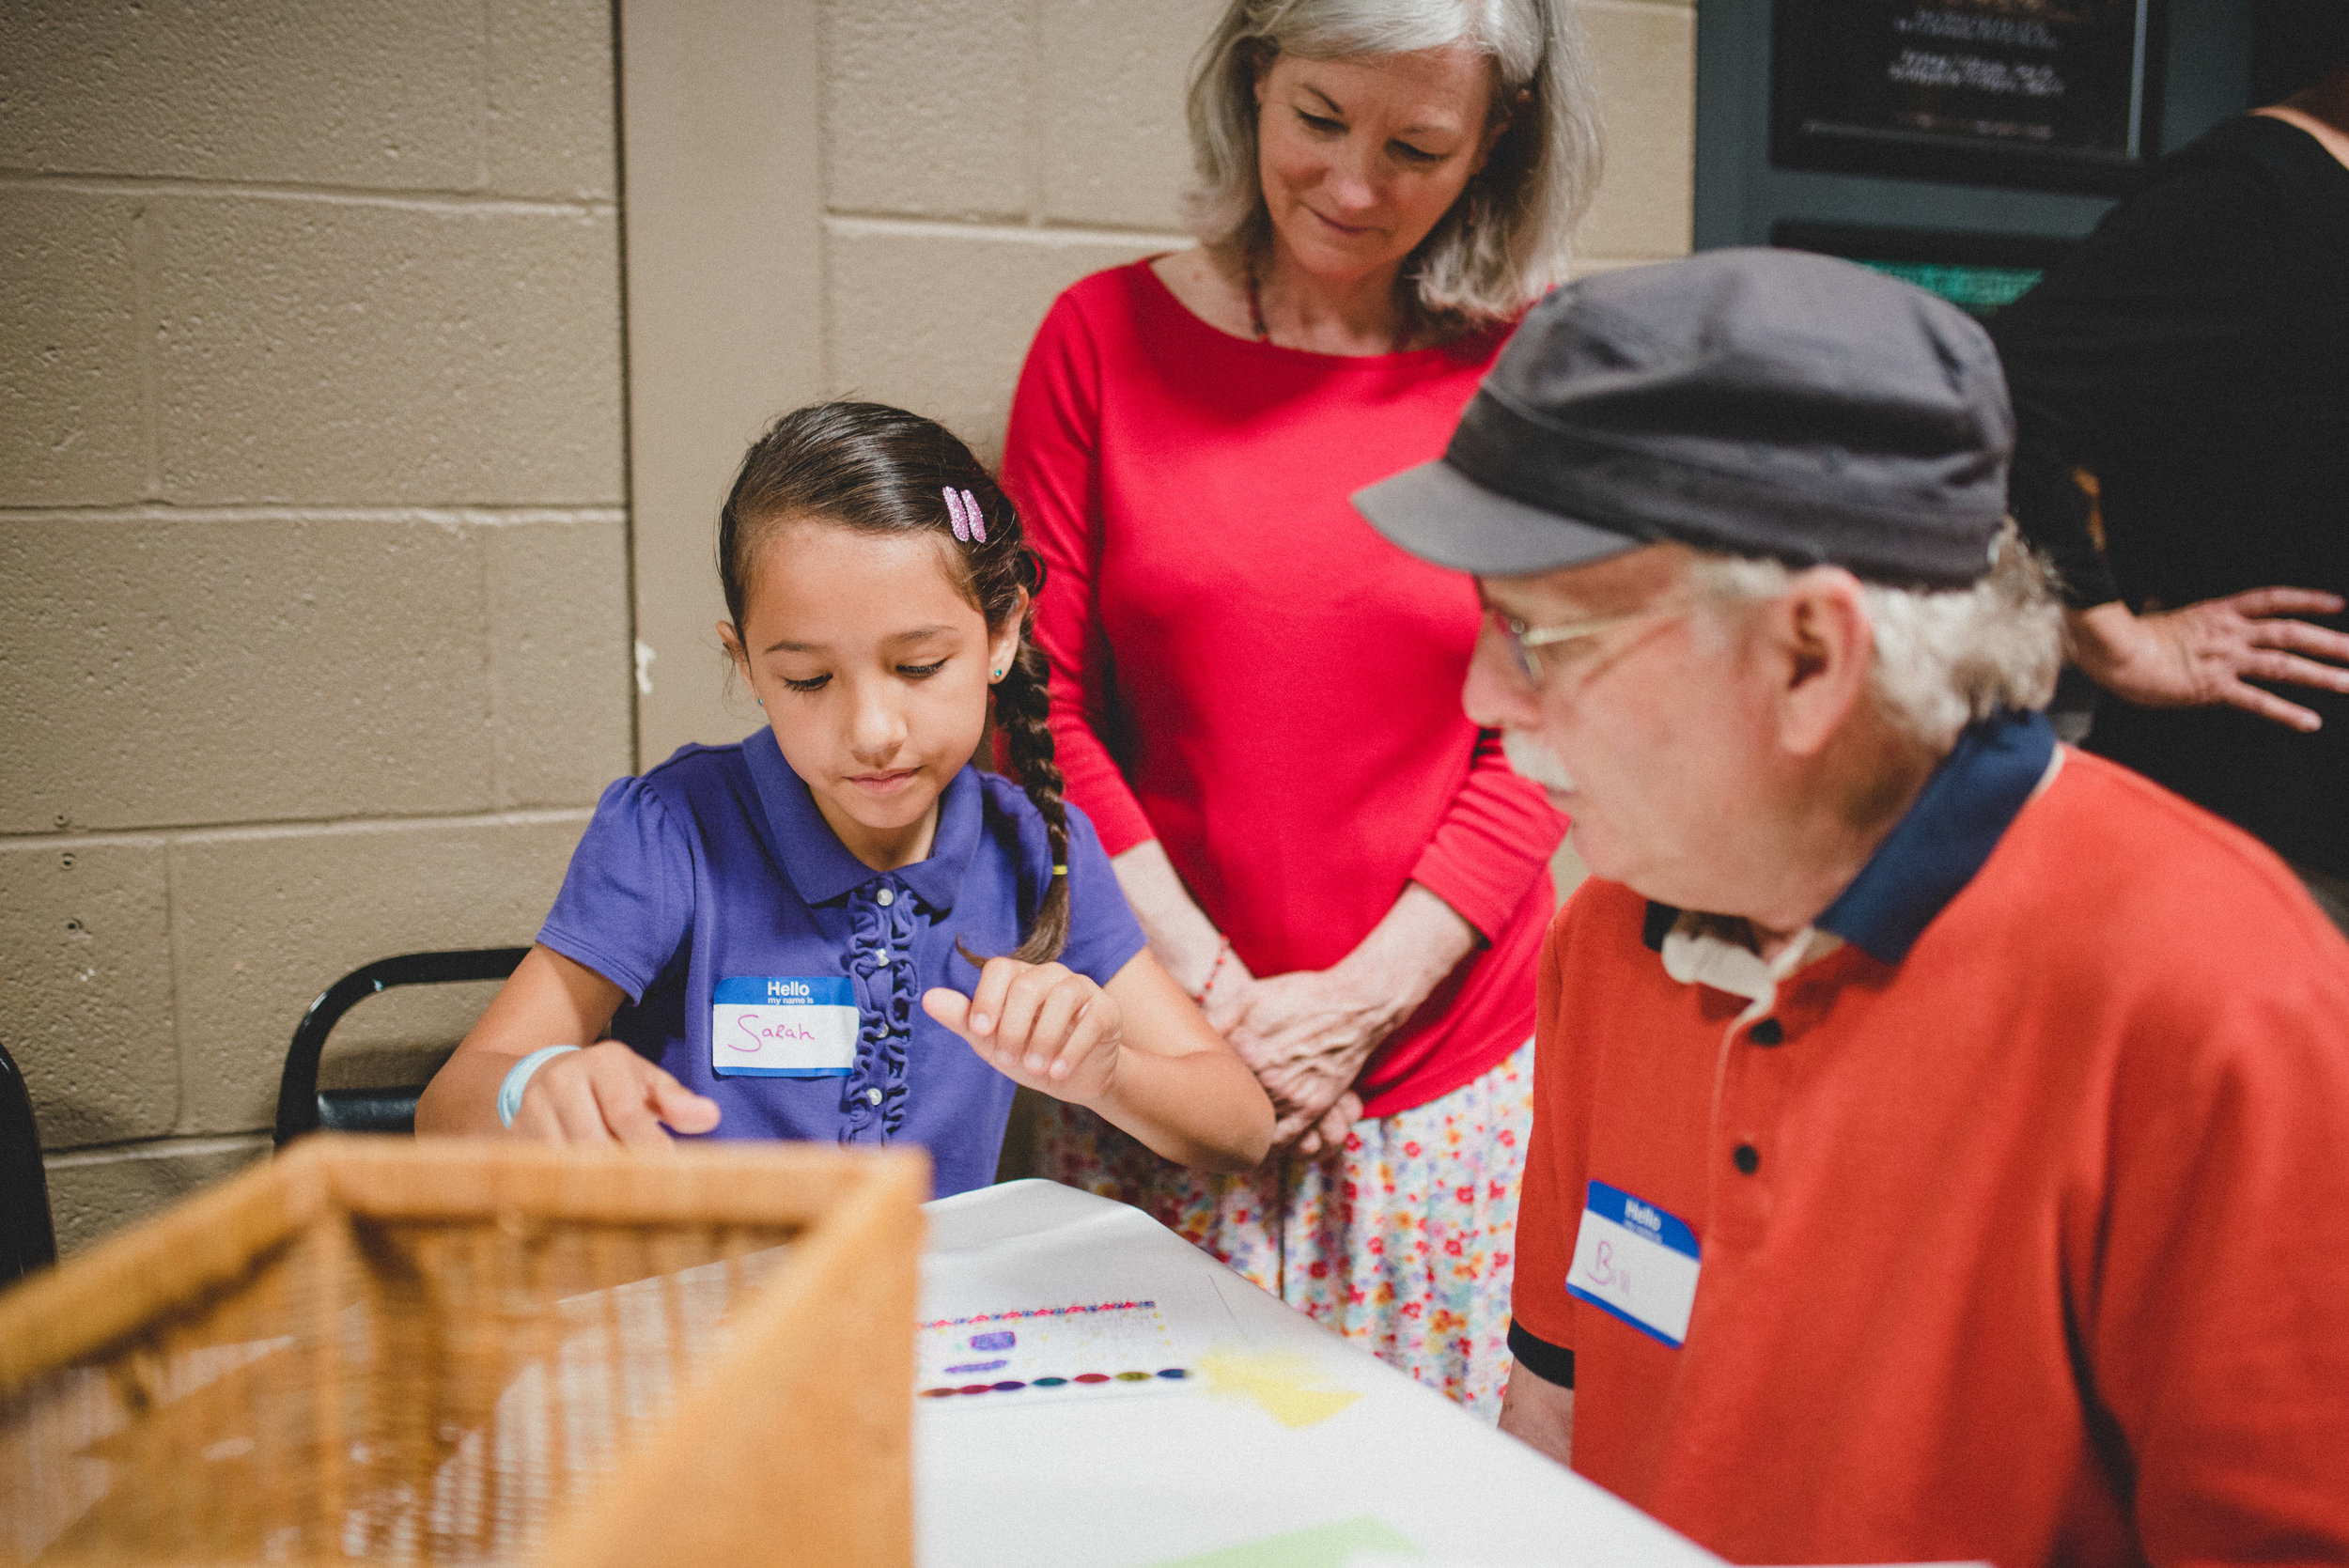 The theme of this year's Grandparents Day was 'A Thankful Generation'. Students prepared individualized poems and cards to express gratitude for their grandparents. We are thankful for so many wonderful relatives involved in these student's lives!